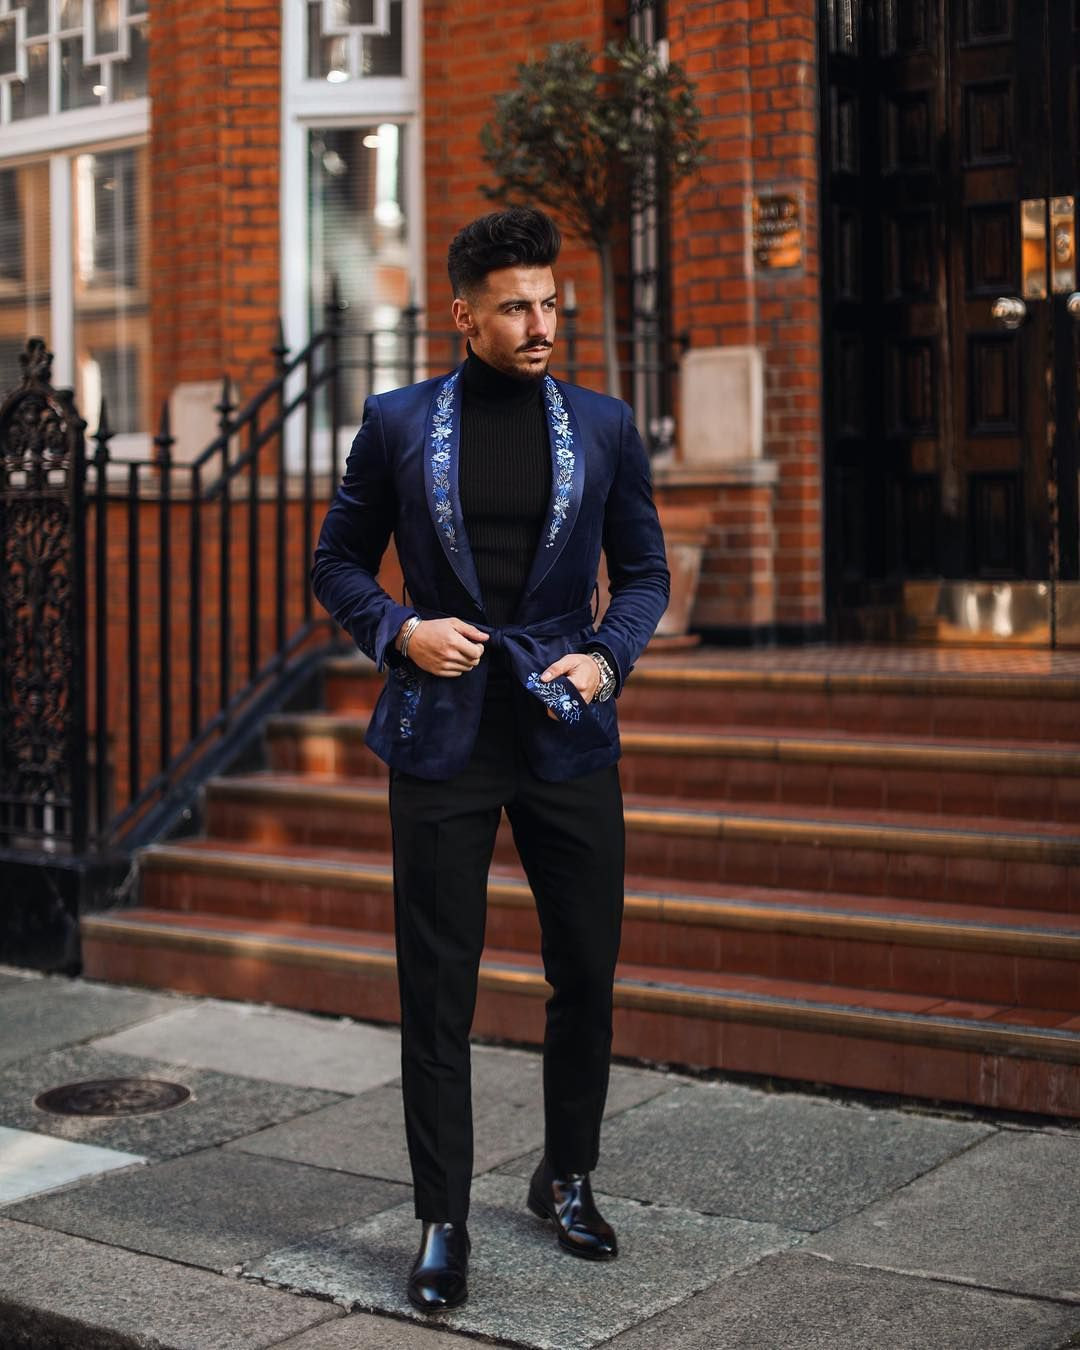 A Smartcasual Party Look What Do You Guys Think Of This Blazer